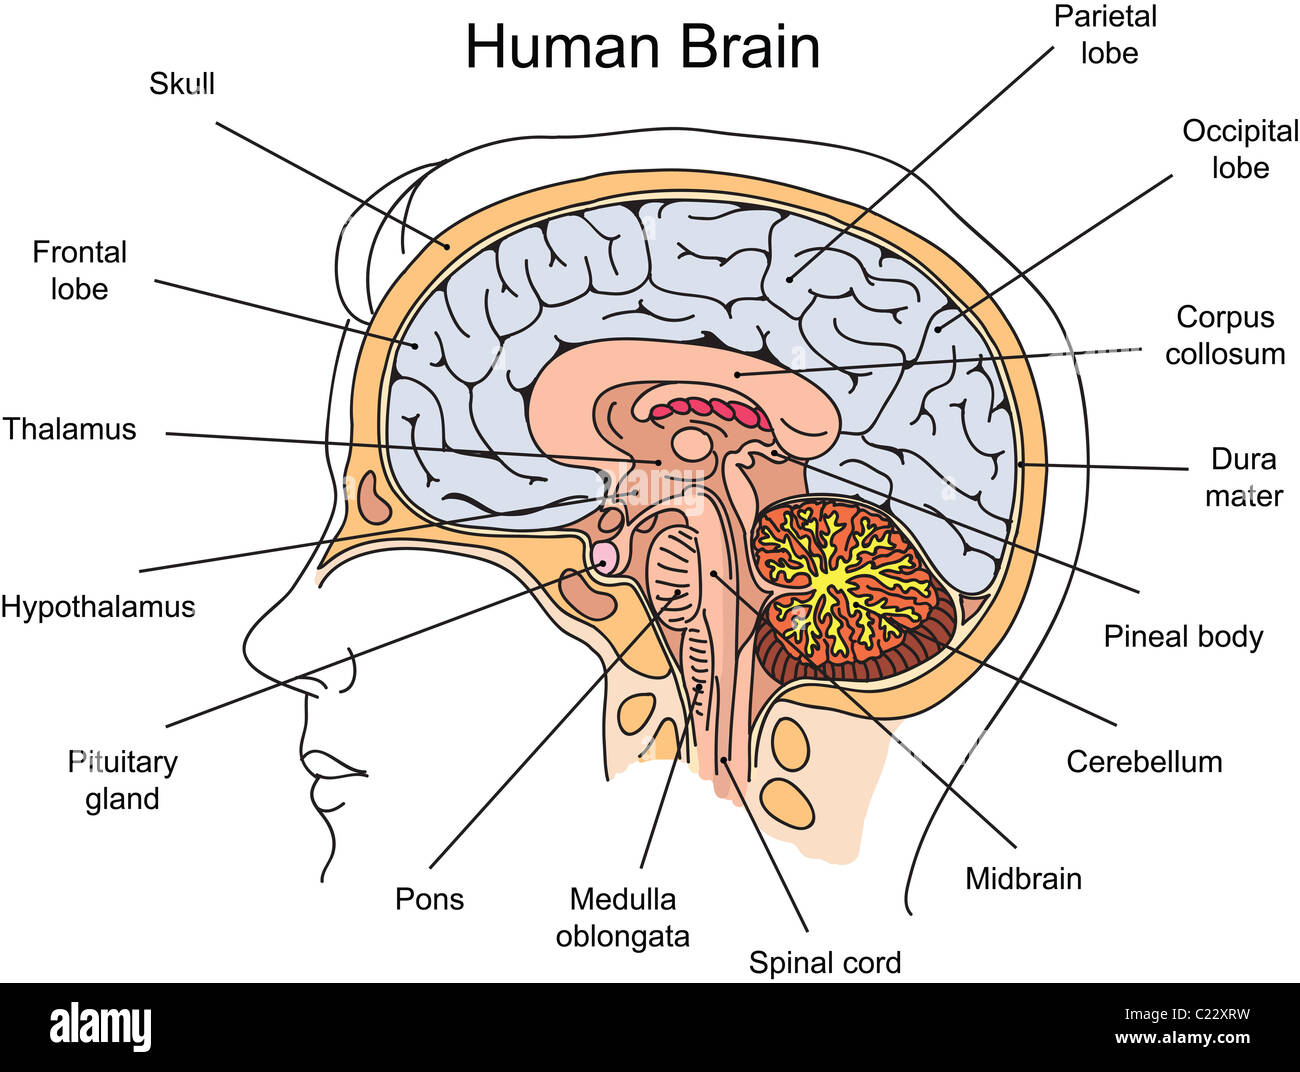 Structure Of Human Brain Illustration Stock Photo 35715005 Alamy